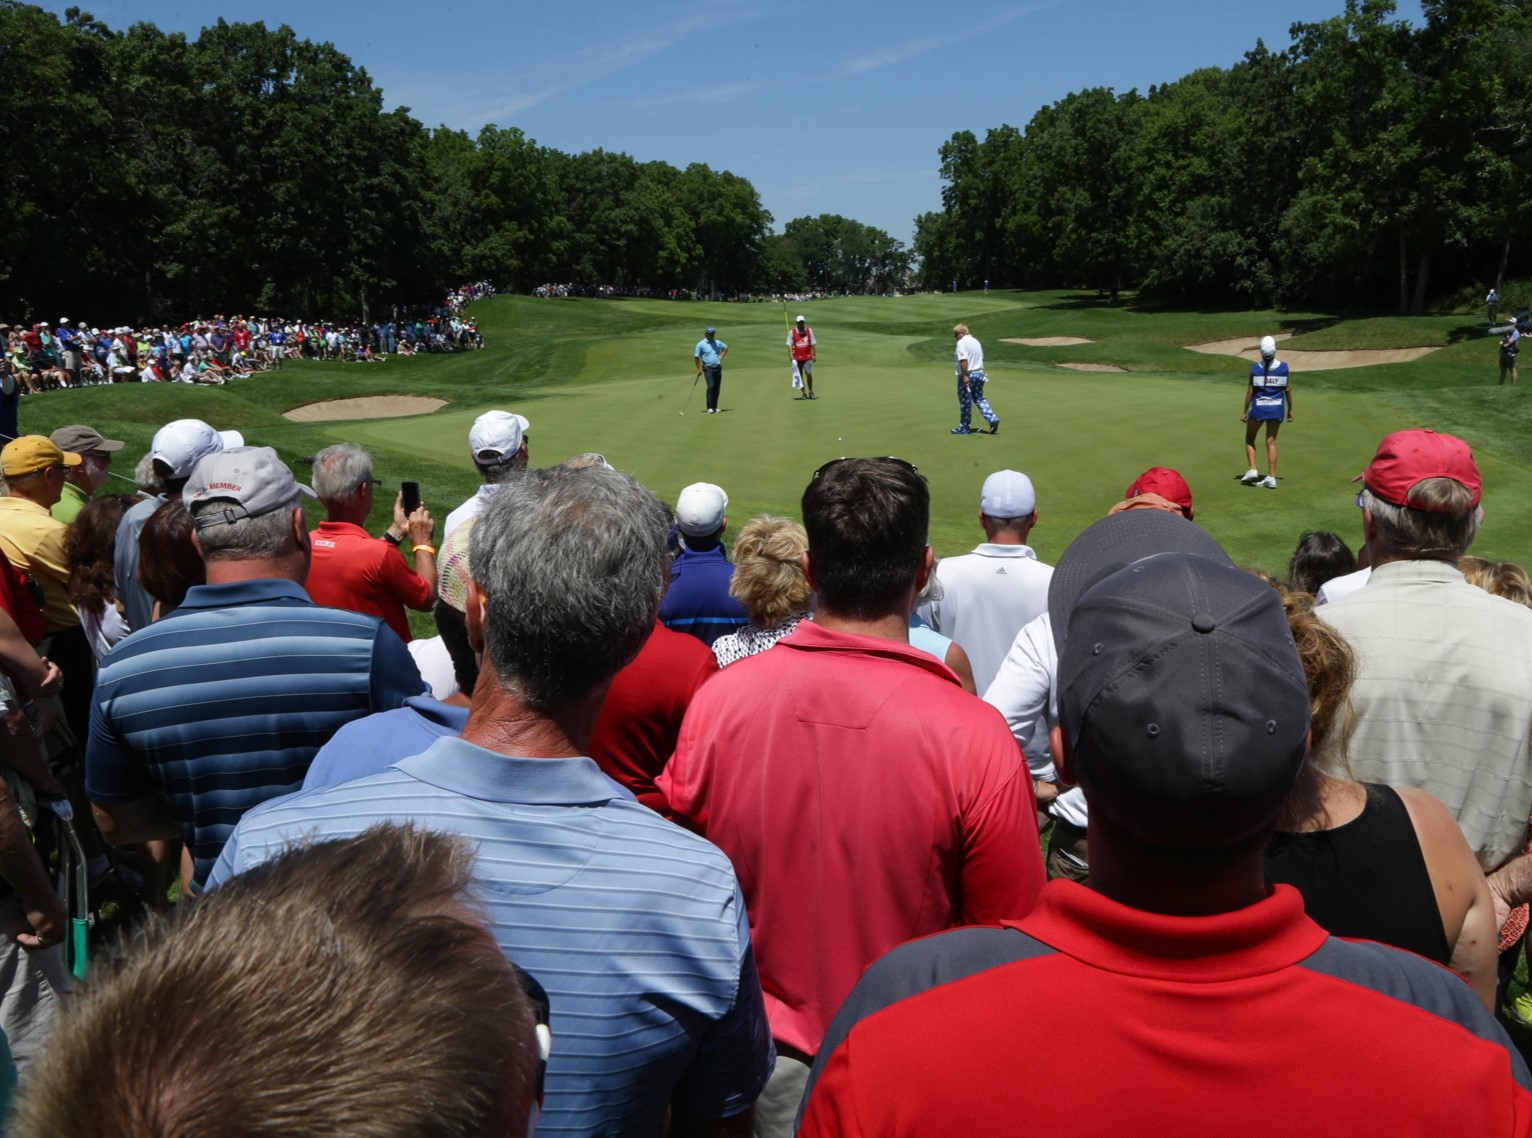 Pga Tour Tickets 2020 American Family Insurance Championship: Tickets